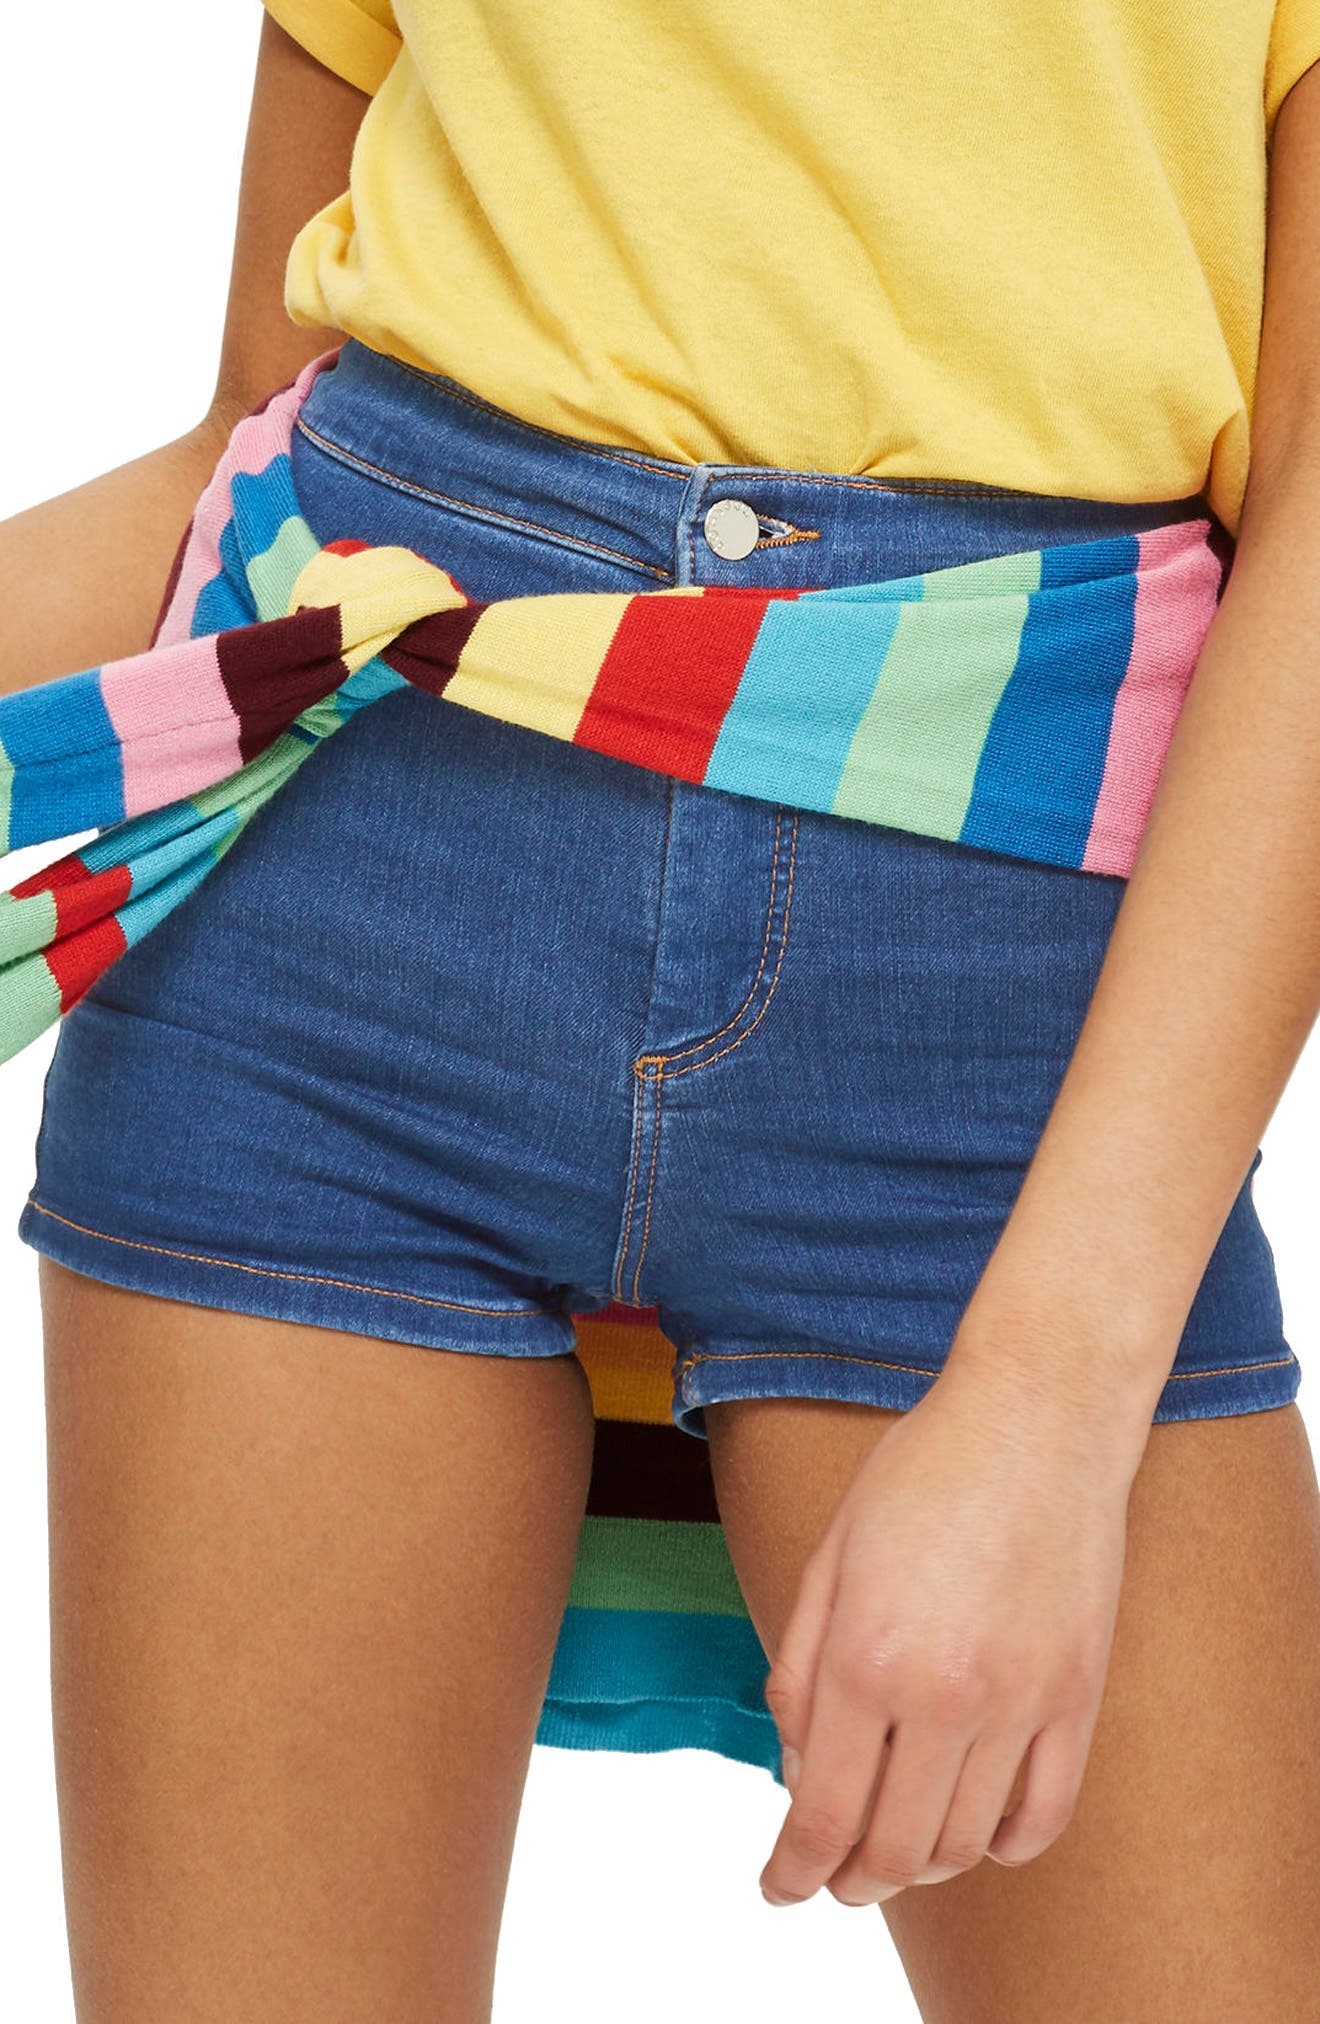 MOTO Joni Mid Denim Shorts,                             Main thumbnail 1, color,                             420